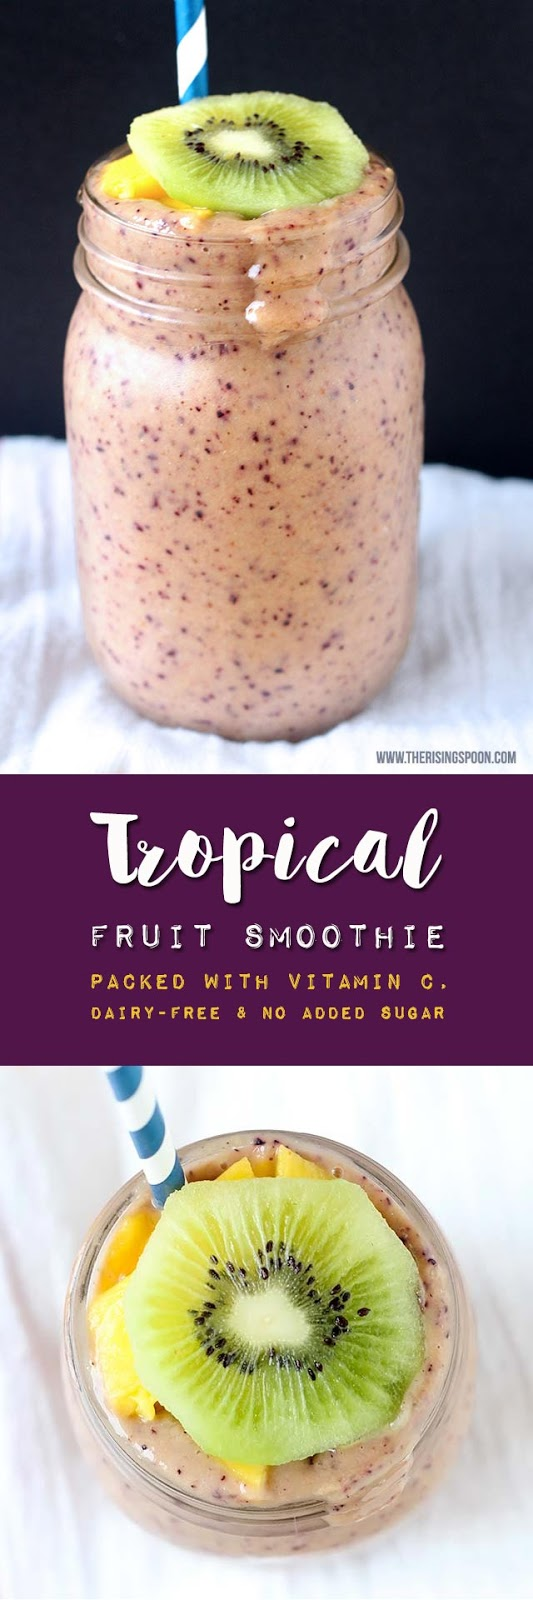 A healthy smoothie recipe with tropical fruits like mango and kiwi (both packed with vitamin C) + protein and healthy fats to create a balanced, nourishing drink that's perfect for a light breakfast, snack, or even dessert.